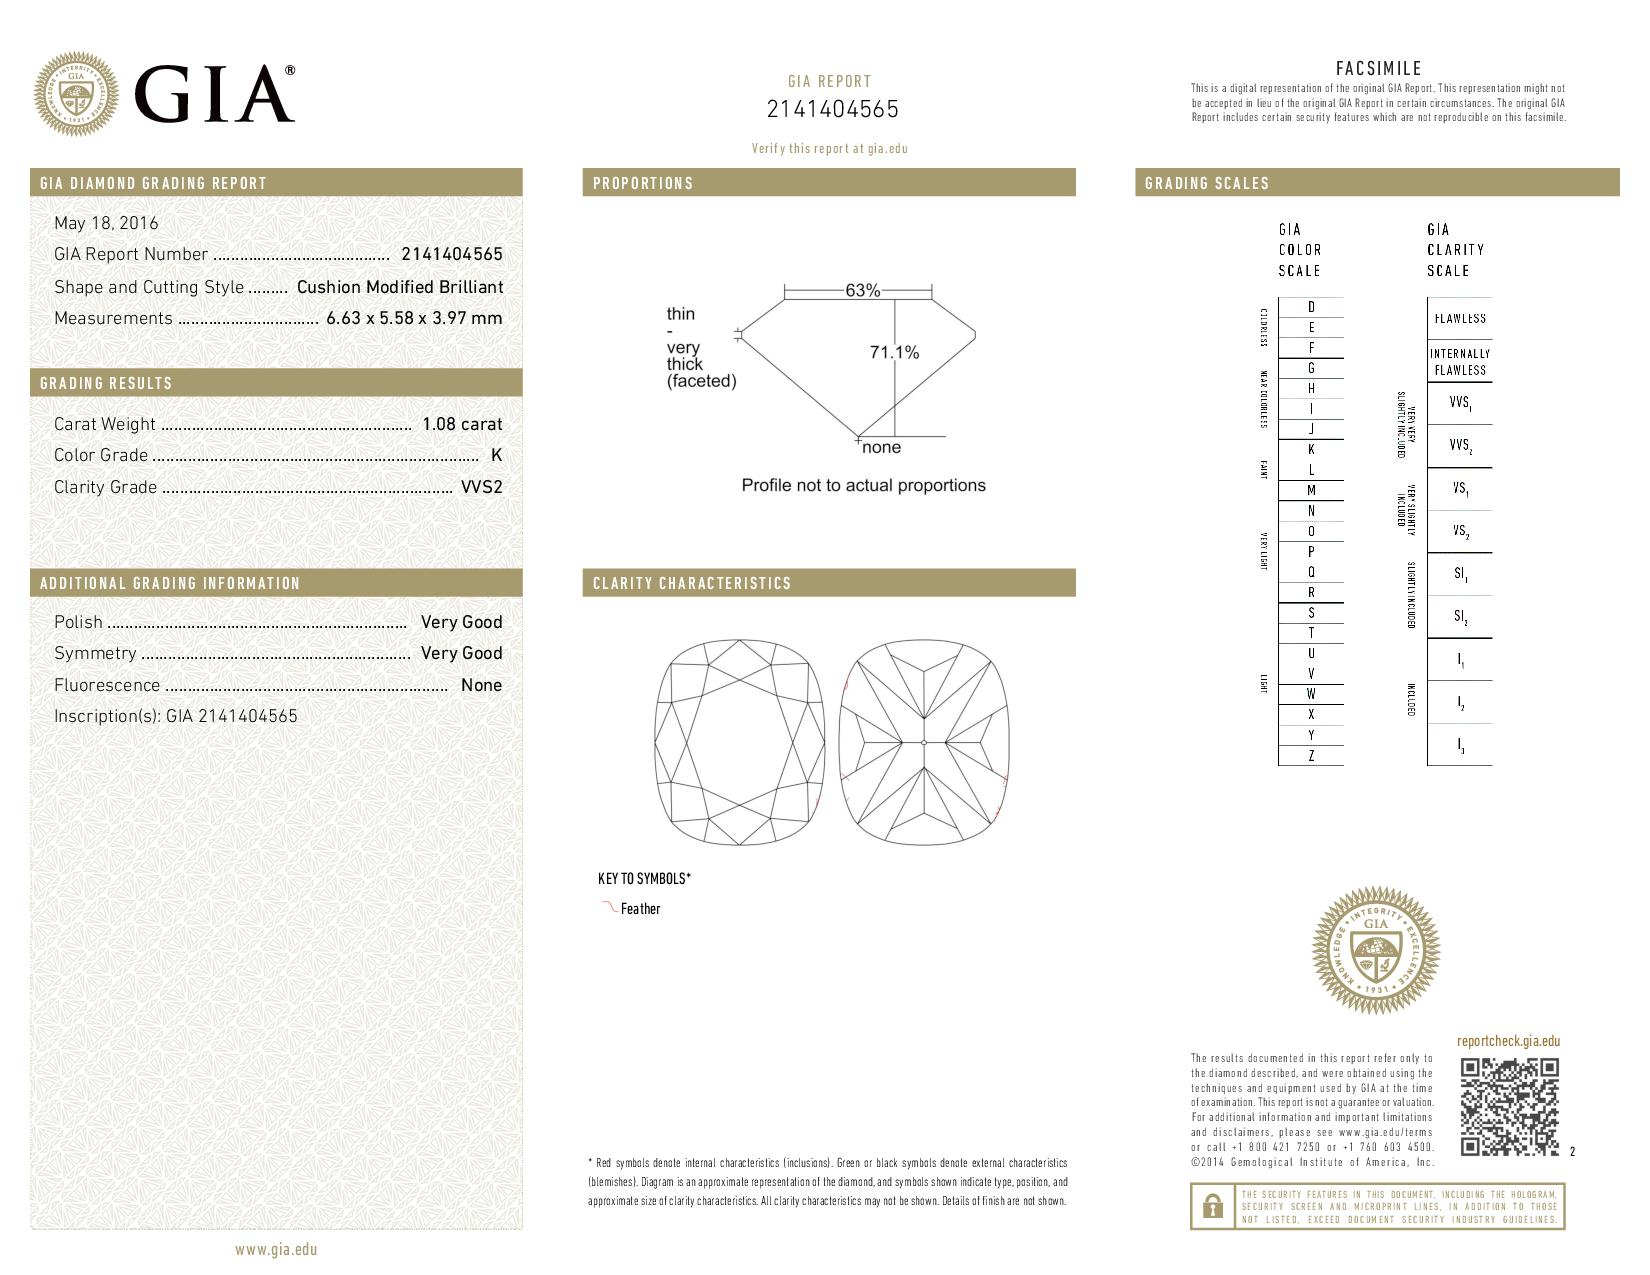 This is a 1.08 carat cushion shape, K color, VVS2 clarity natural diamond accompanied by a GIA grading report.